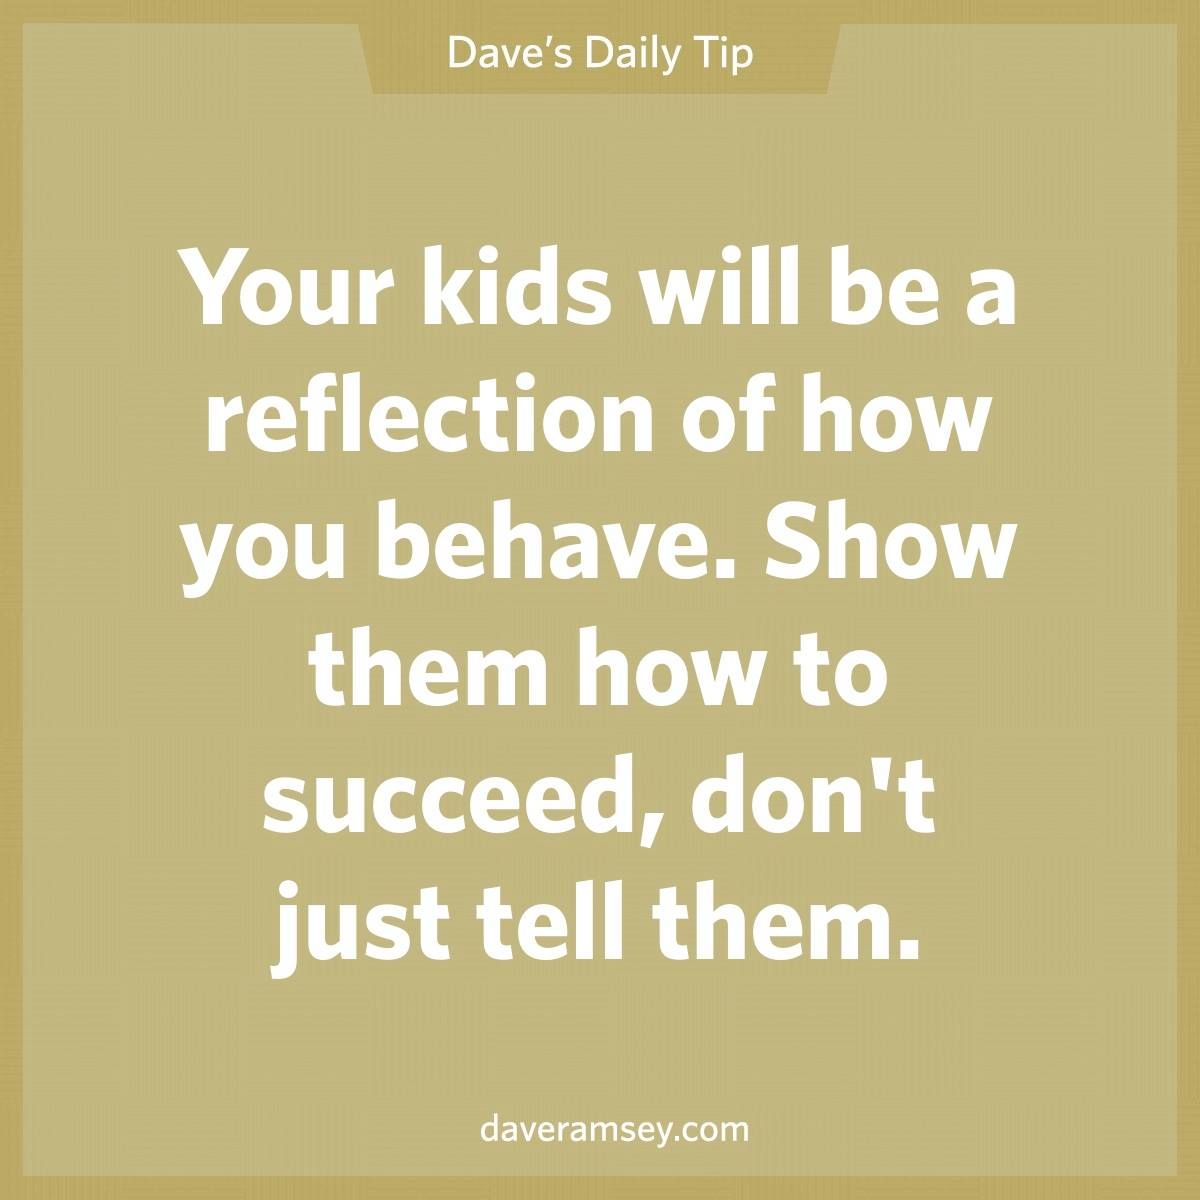 Your Kids Will Be A Reflection Of How You Behave Show Them How To Succeed Don T Just Tell Th Practice What You Preach Dave Ramsey Quotes Inspirational Quotes